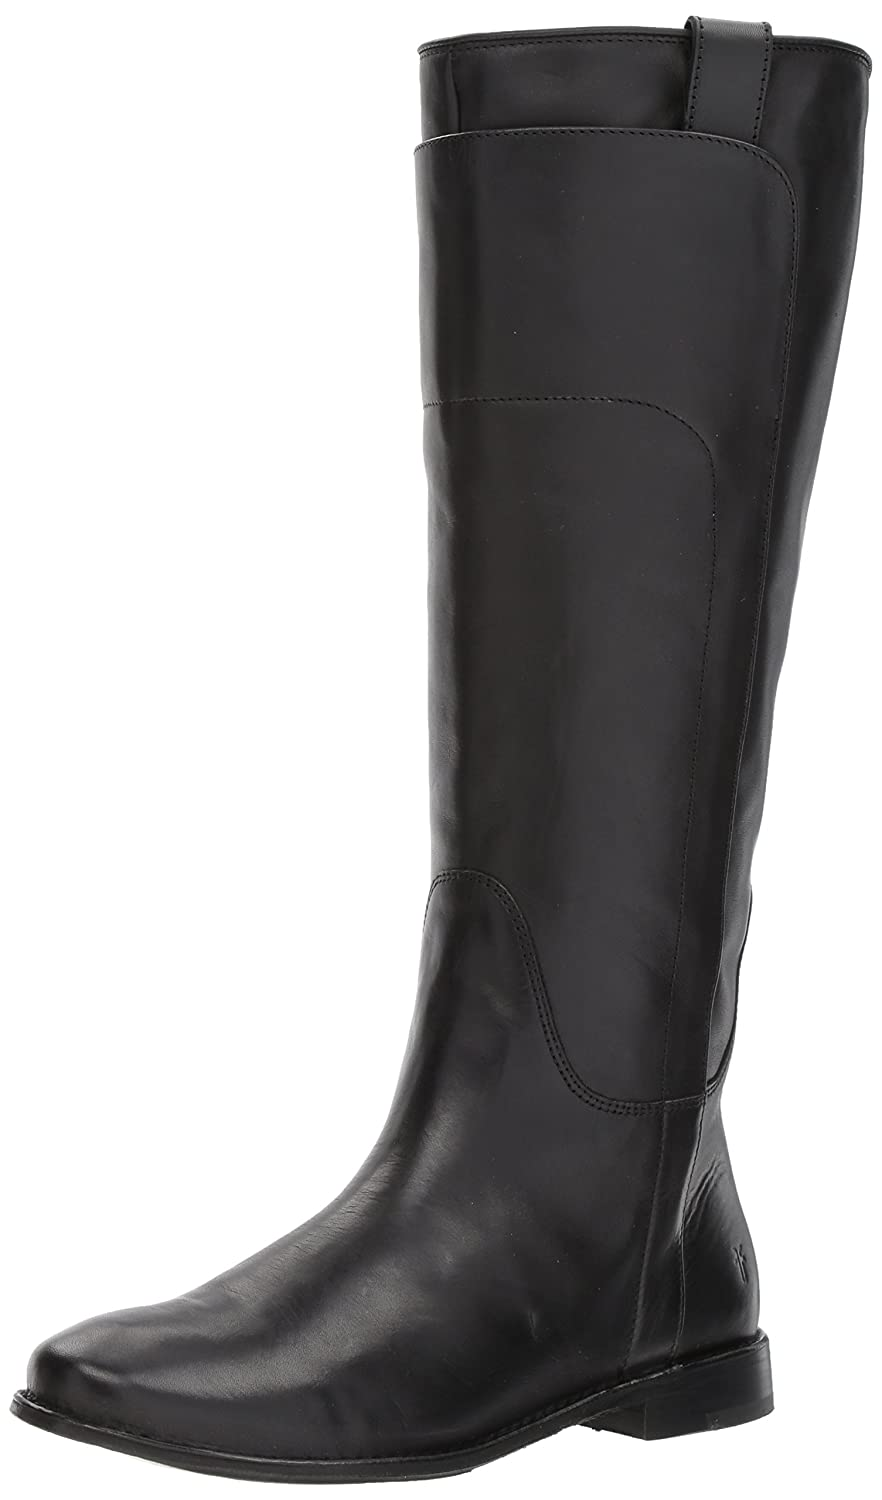 FRYE Women's Paige Tall Riding Boot B06VSPCXC3 8.5 B(M) US|Black